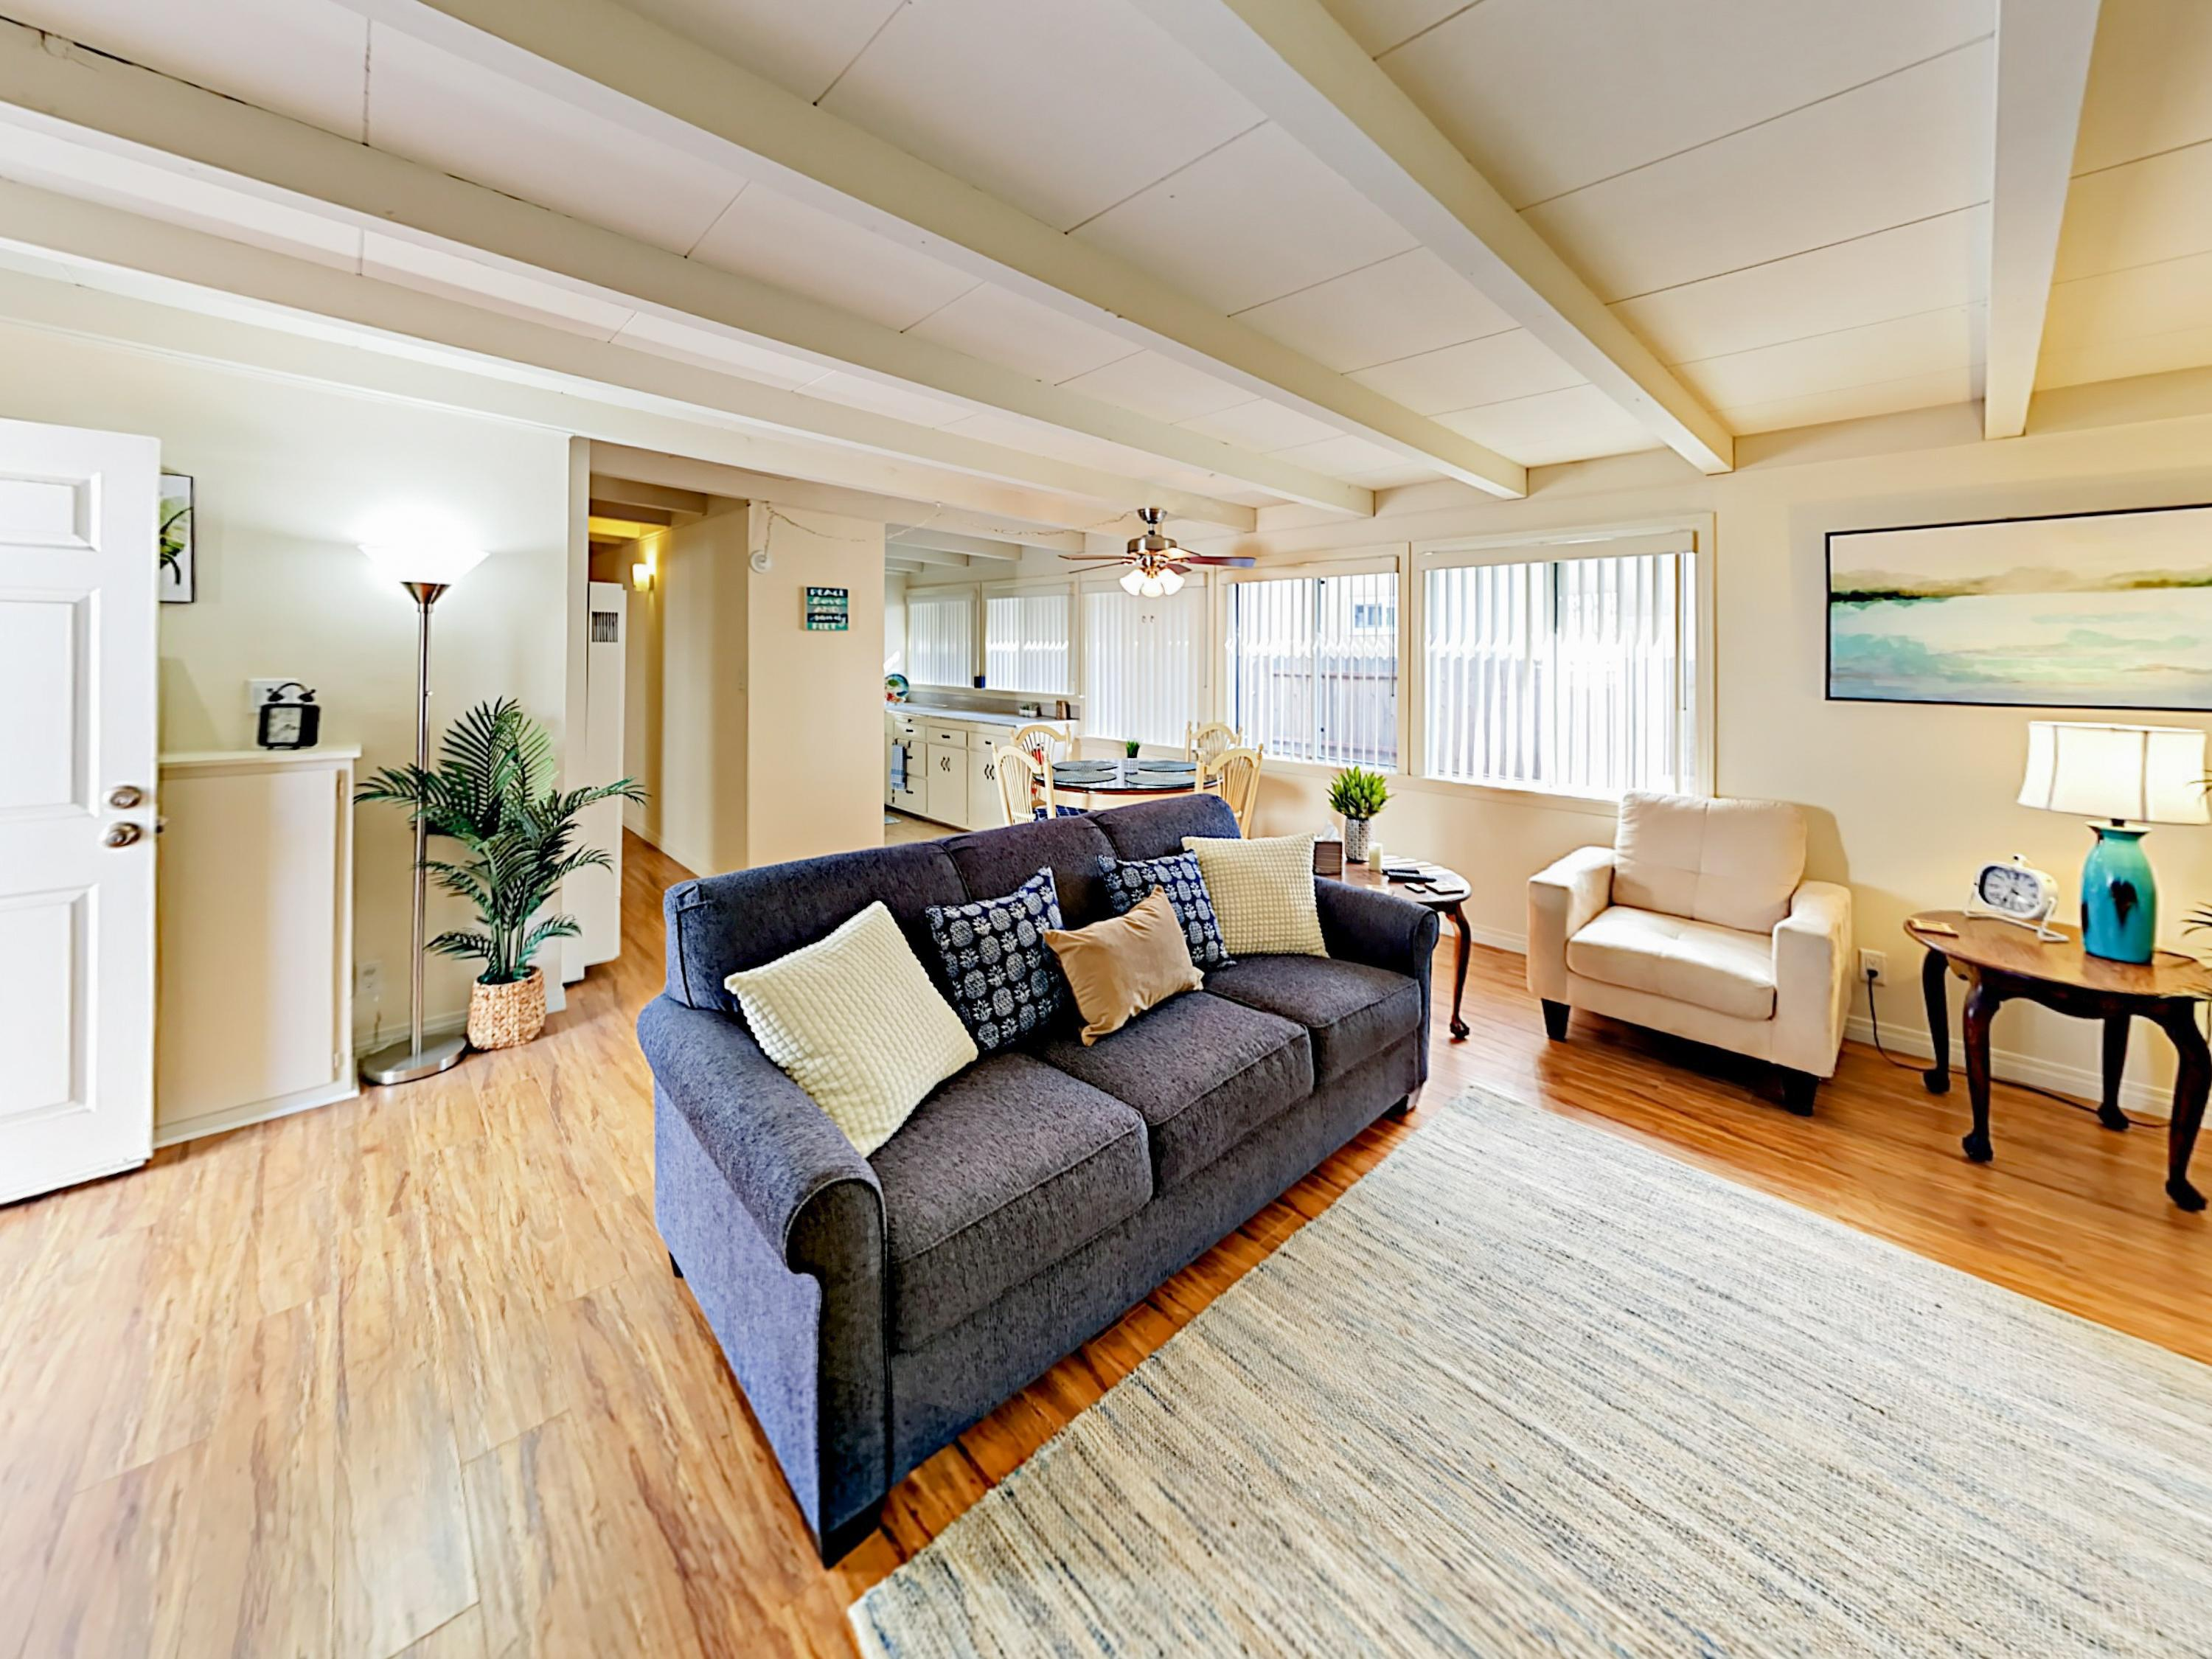 Welcome to Ventura! This lower-level duplex unit is professionally managed by TurnKey Vacation Rentals.